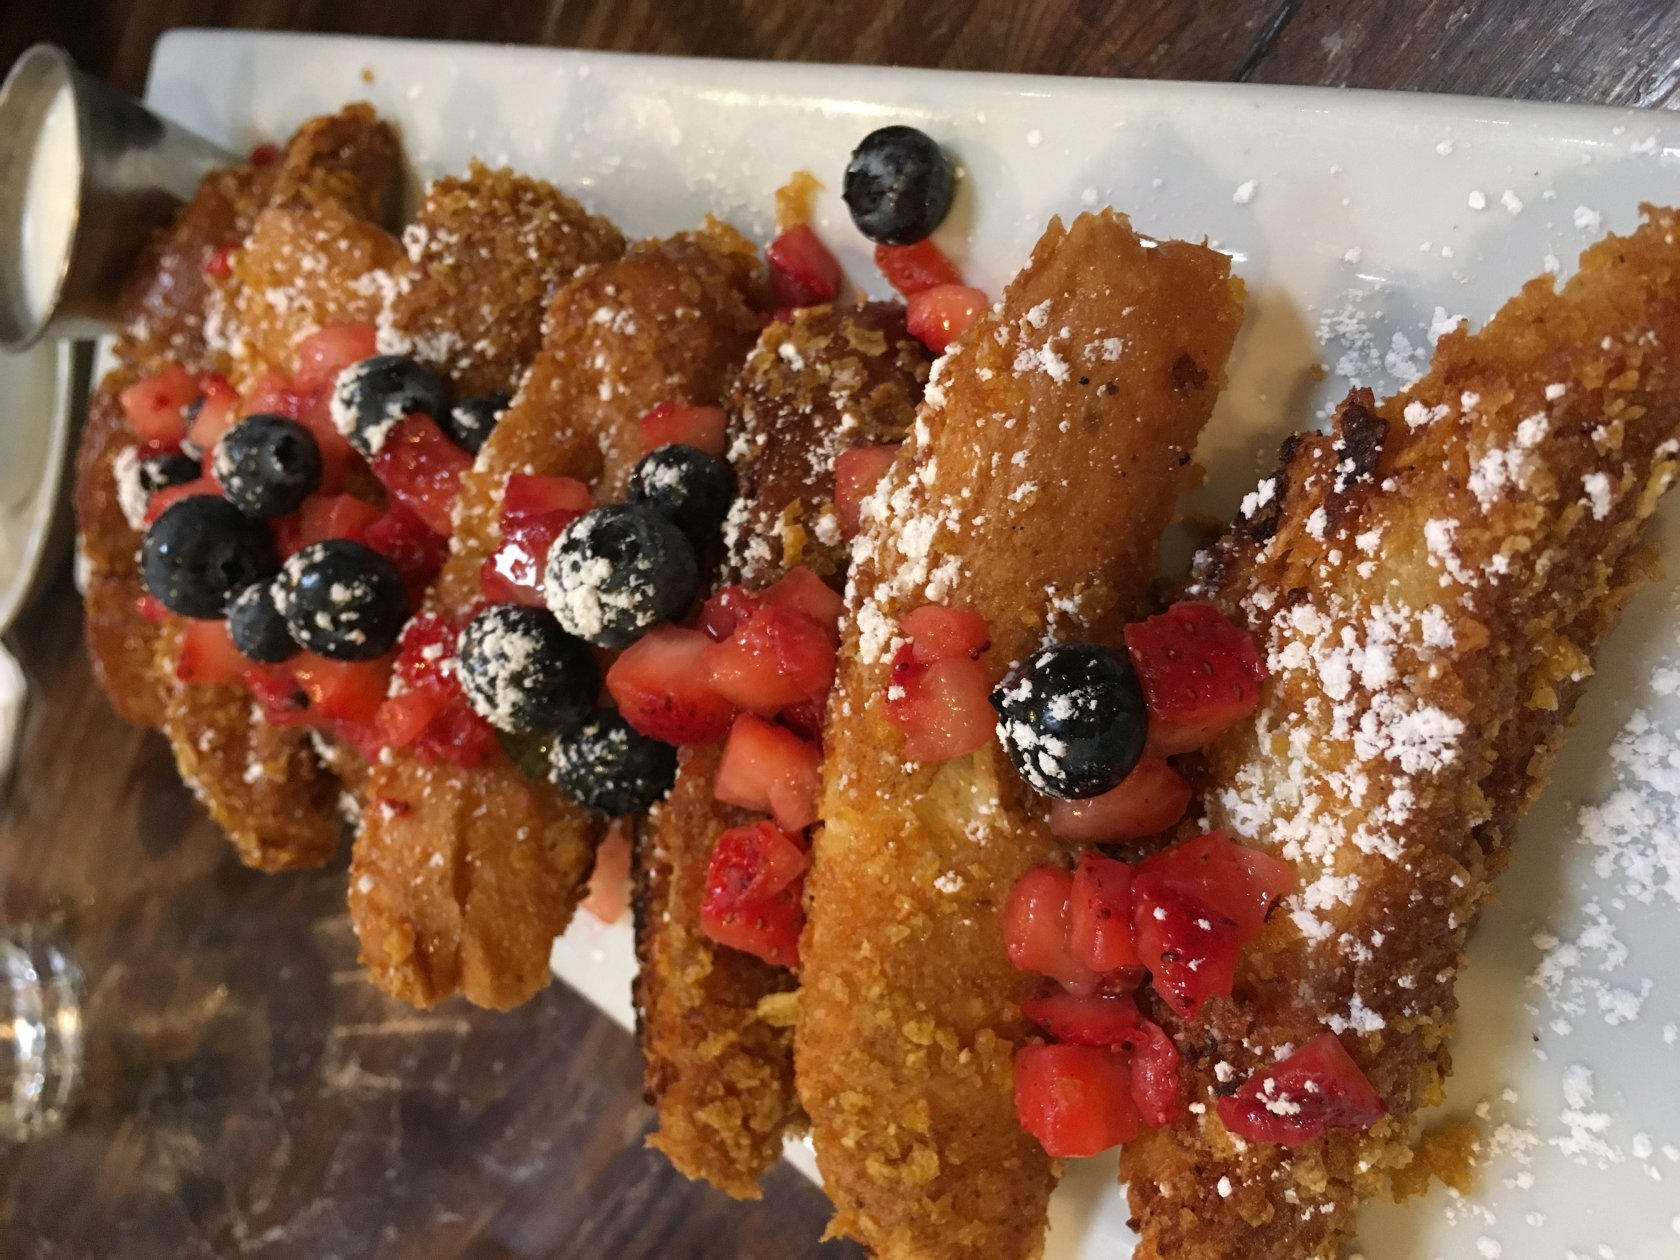 My Favorite Place To Eat Brunch Is At Blu Jam Cafe Everything I've Tried  On Their Menu Is Pretty Good, But This Crunchy French Toast